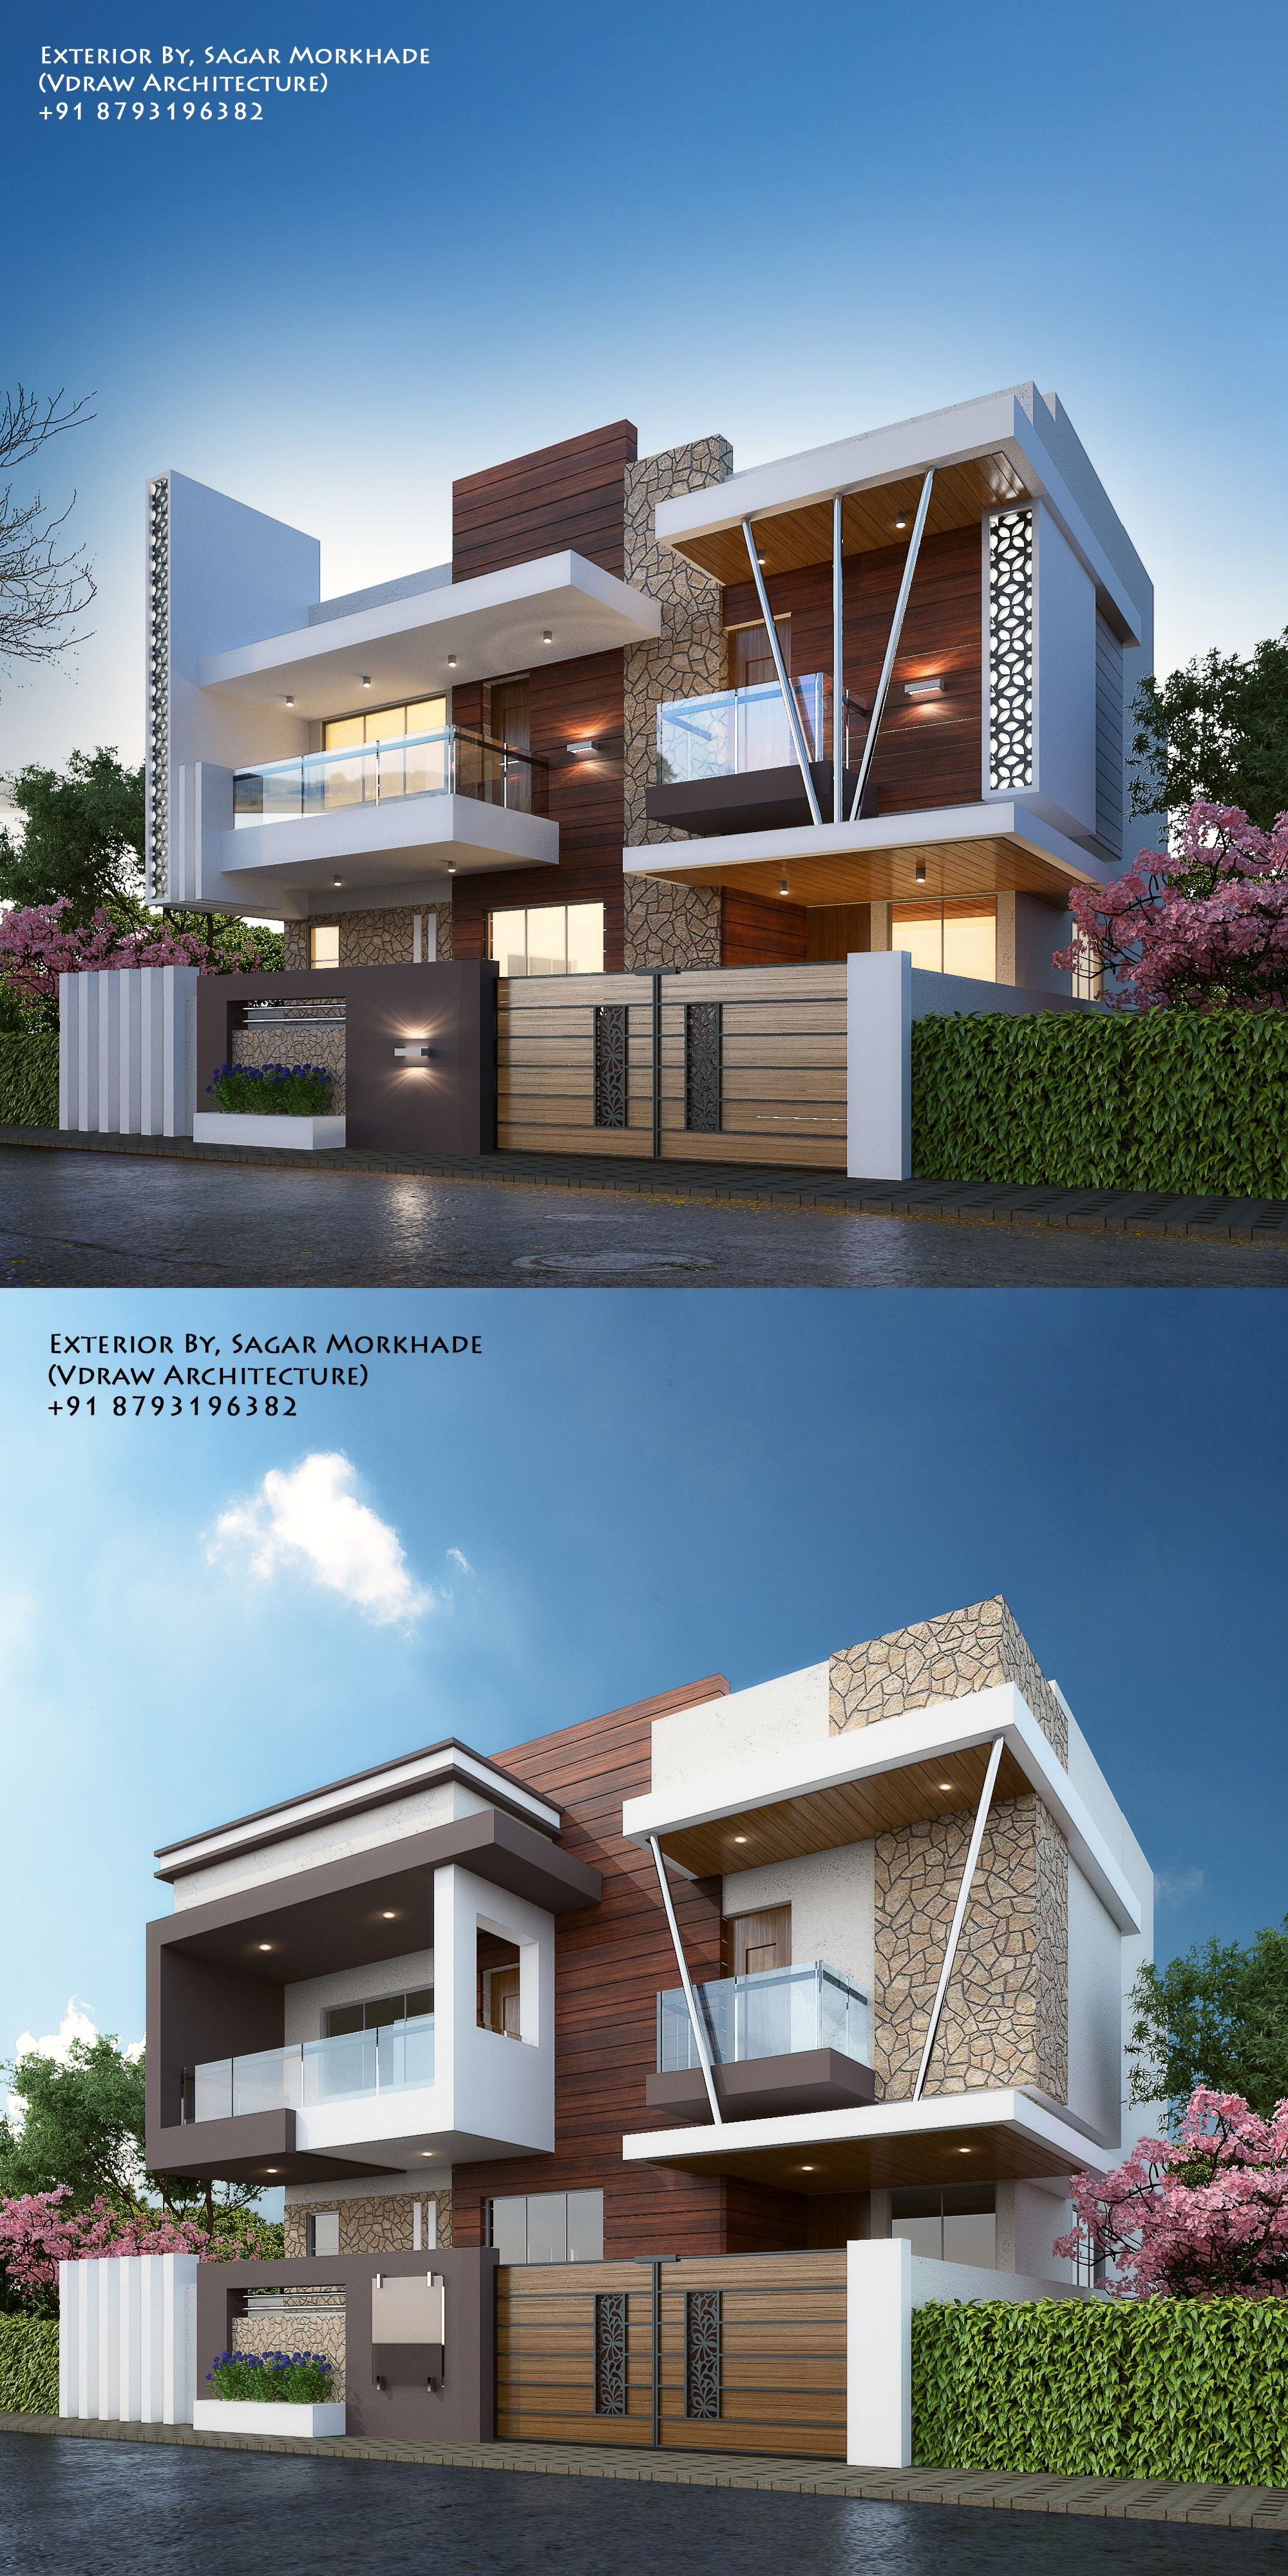 Images Of Most Beautiful Bungalows Best Architecture Luxury Modern House Bungalow Exterior by Ar Sagar Morkhade Vdraw